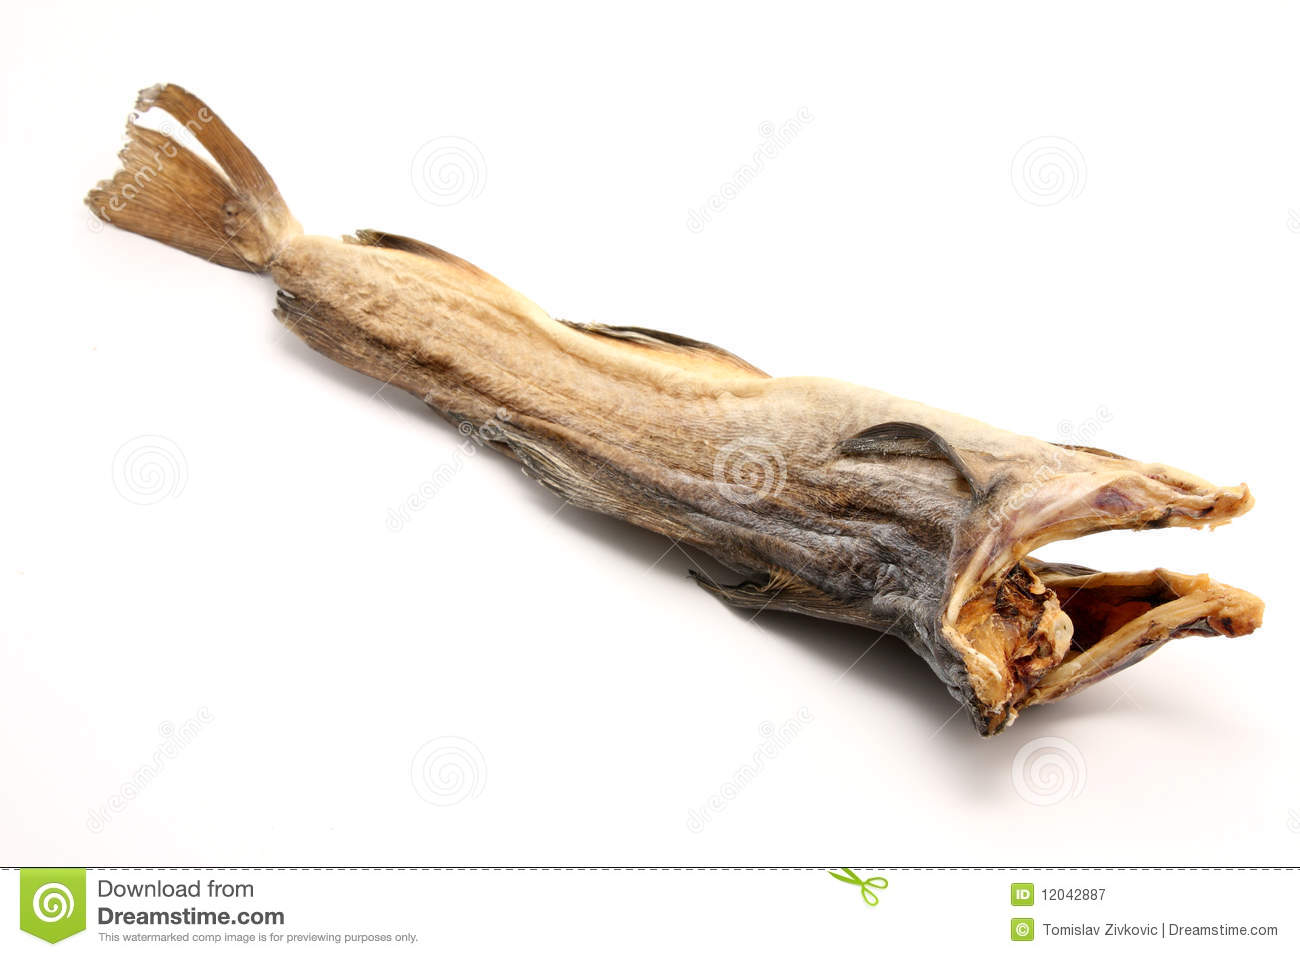 Dry cod fish royalty free stock photography image 12042887 for Too cool fishing